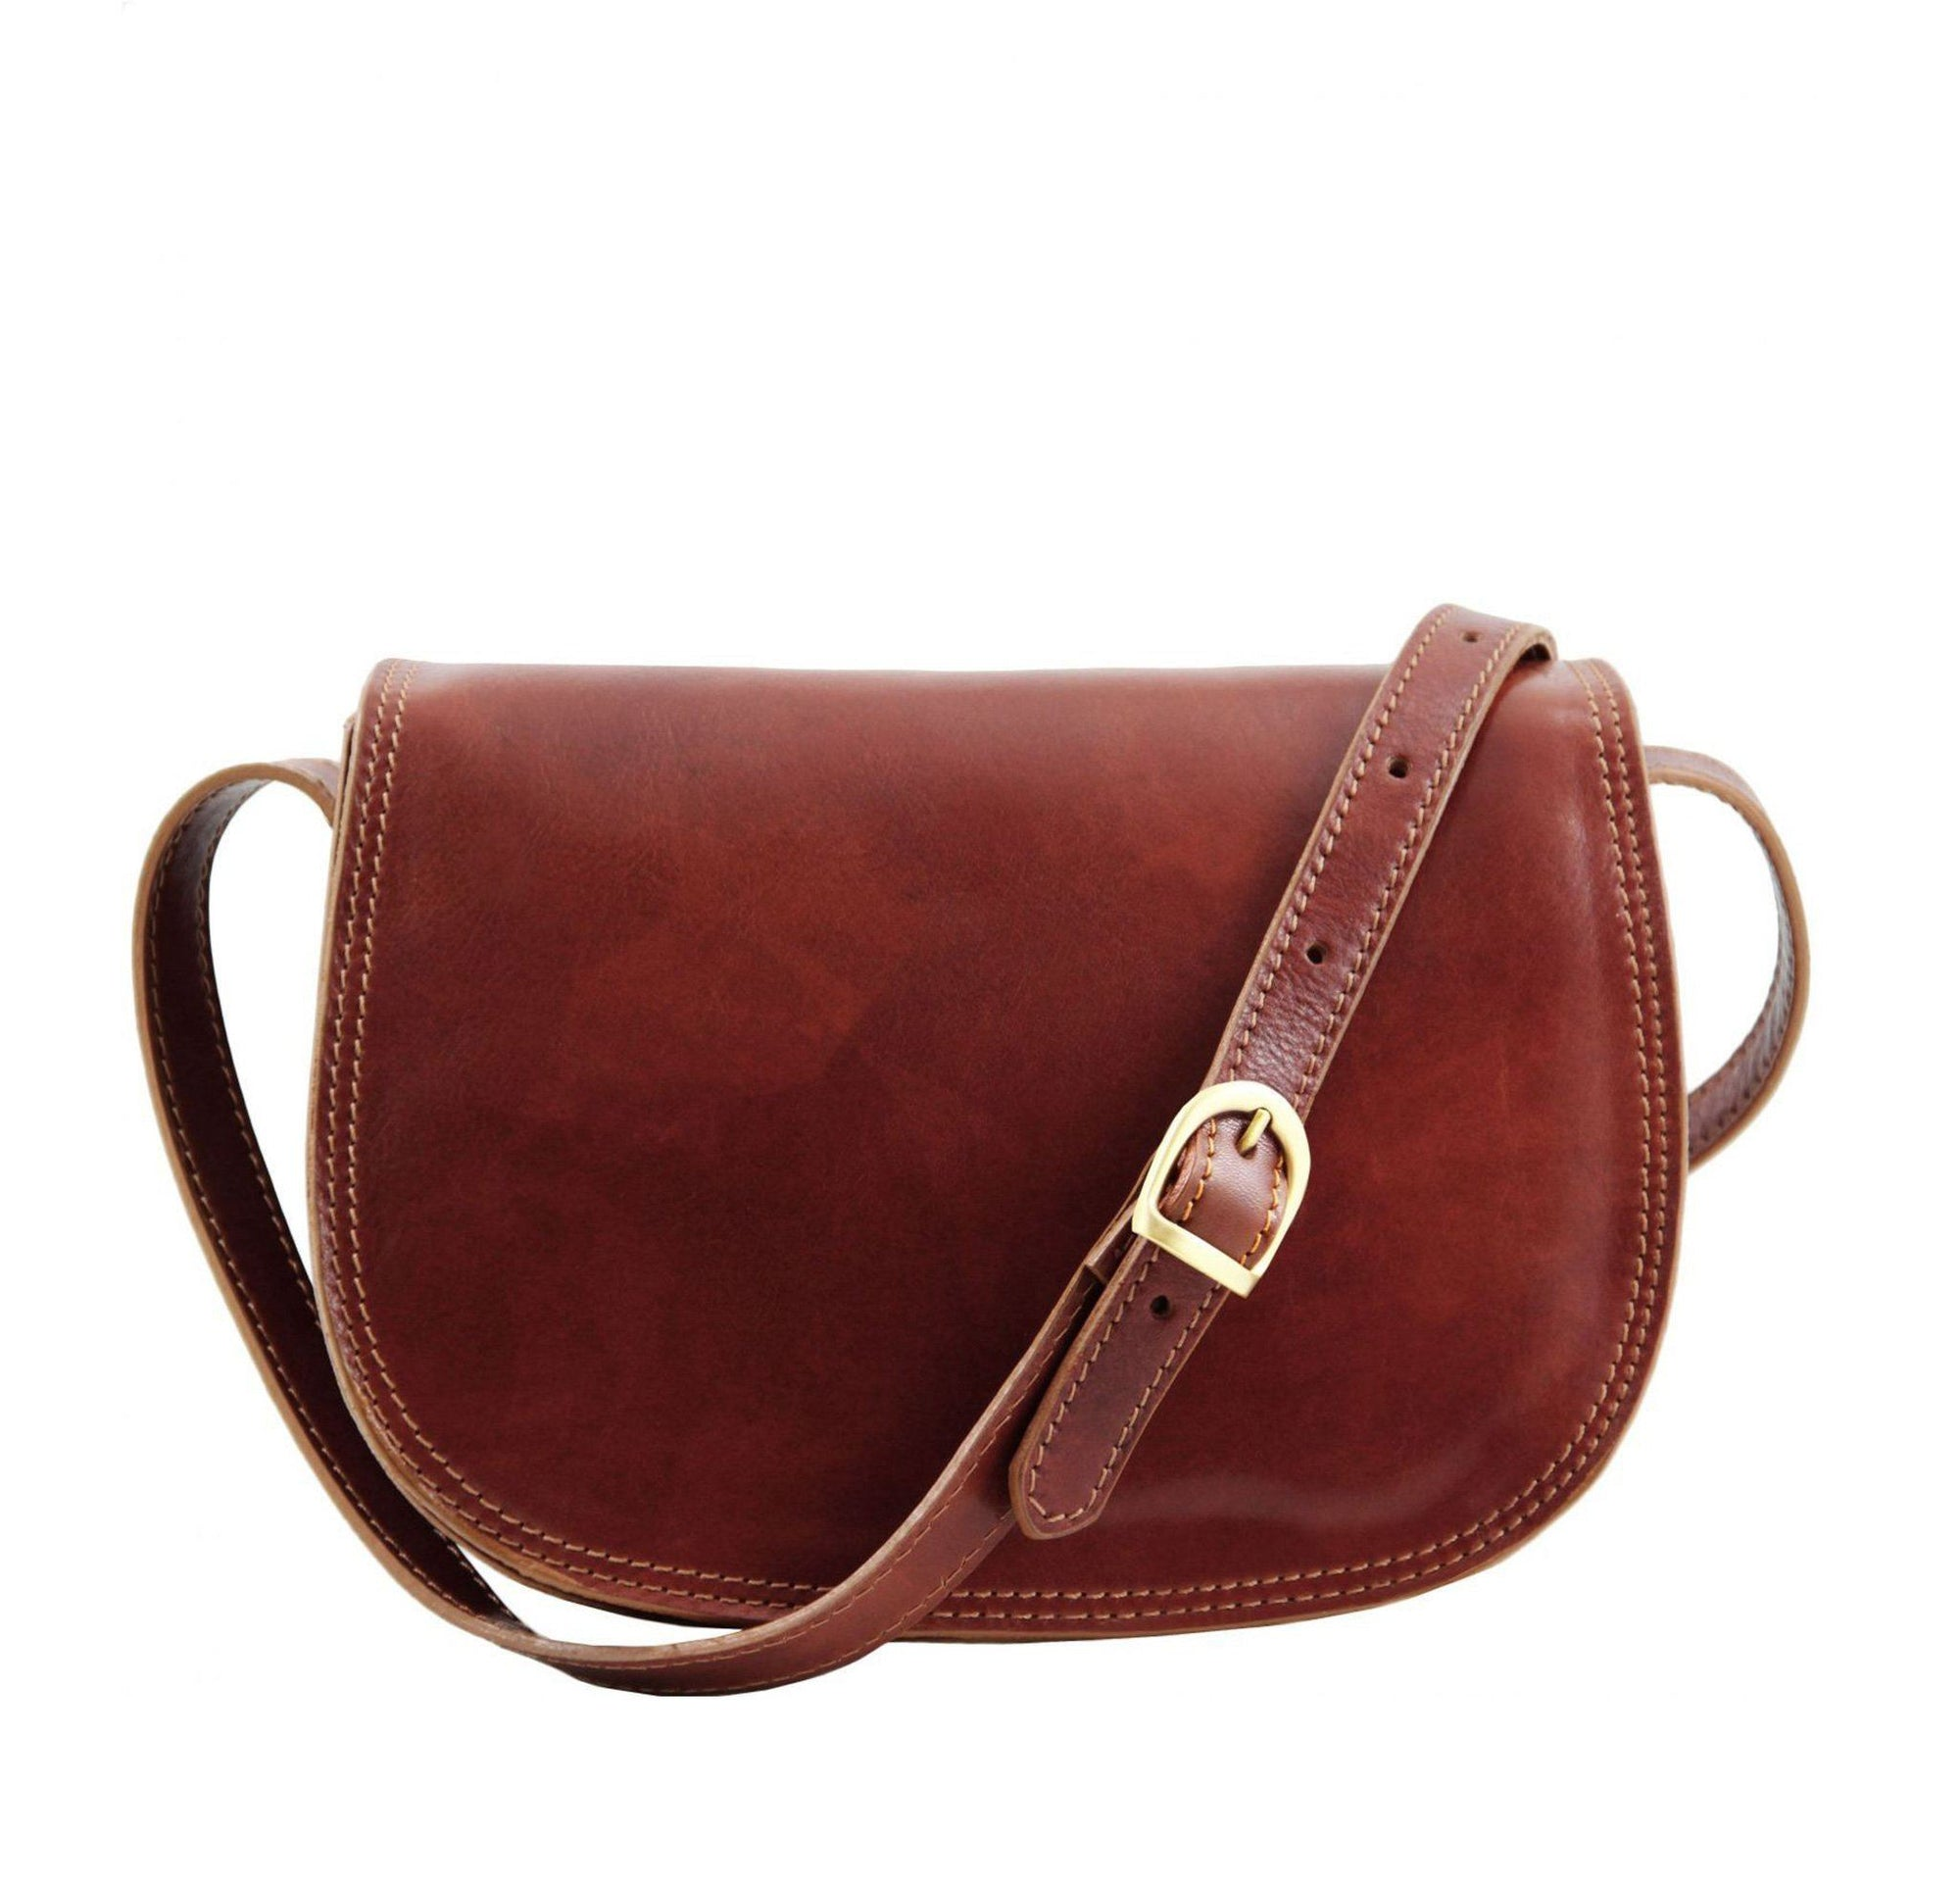 ISABELLA LADIES LEATHER BAG